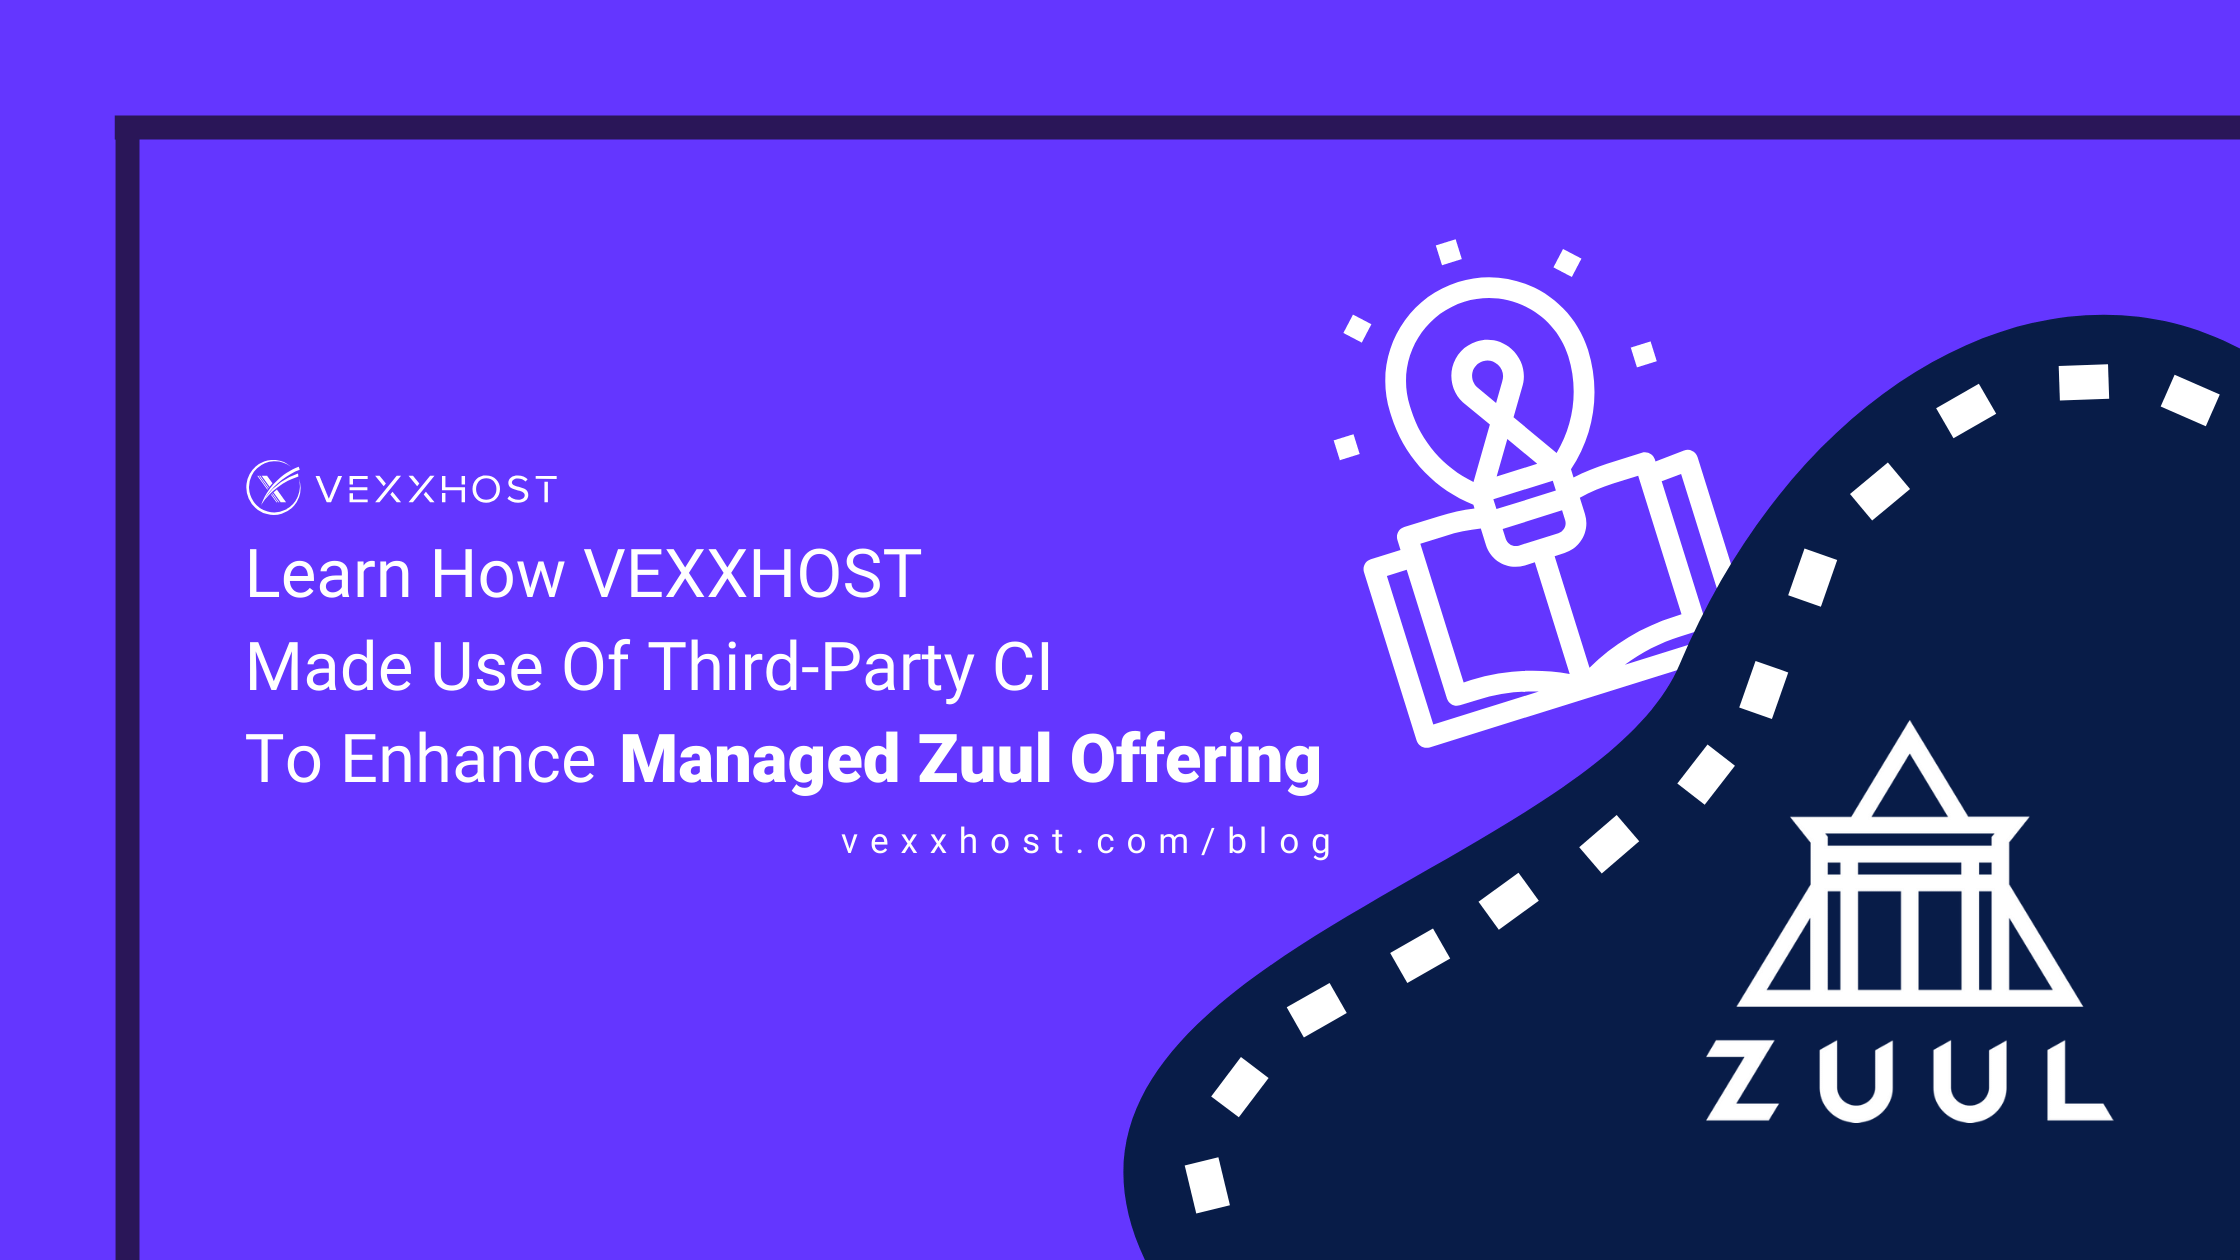 Learn how VEXXHOST made use of Third-party CI to enhance Managed Zuul Offering